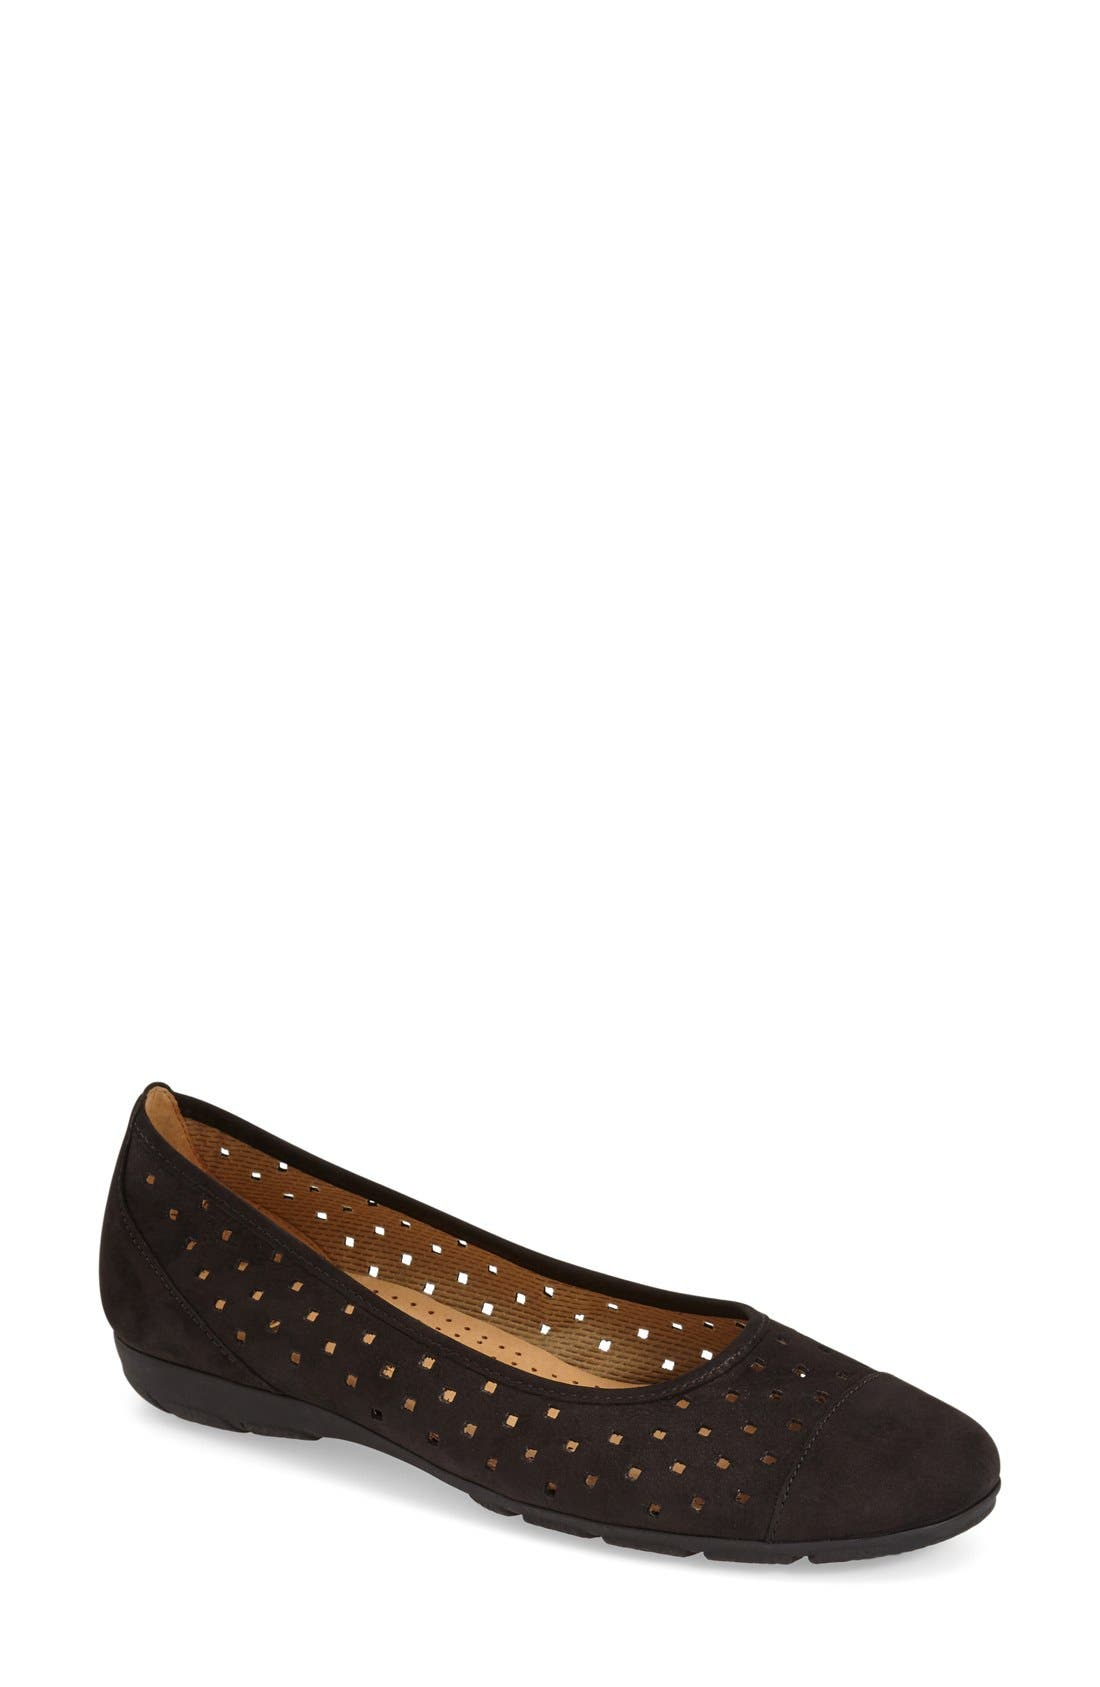 Perforated Ballet Flat,                         Main,                         color, BLACK NUBUCK